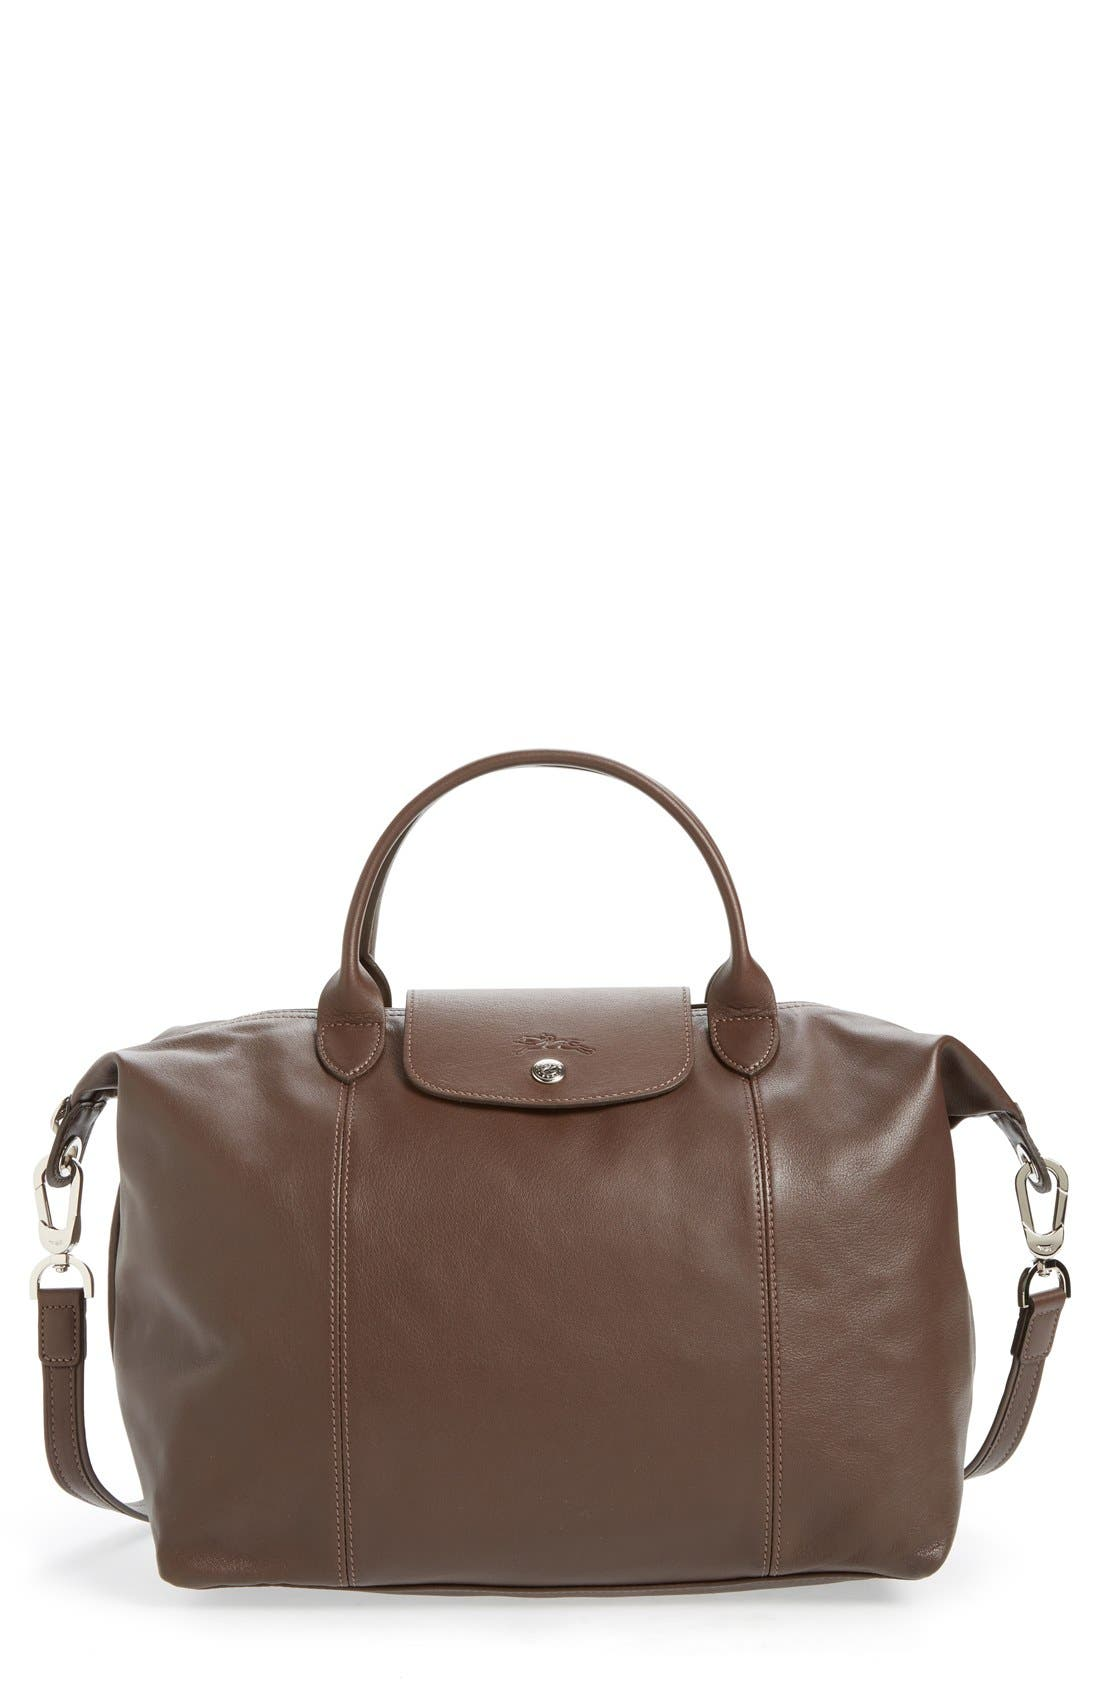 Medium 'Le Pliage Cuir' Leather Top Handle Tote,                             Main thumbnail 8, color,